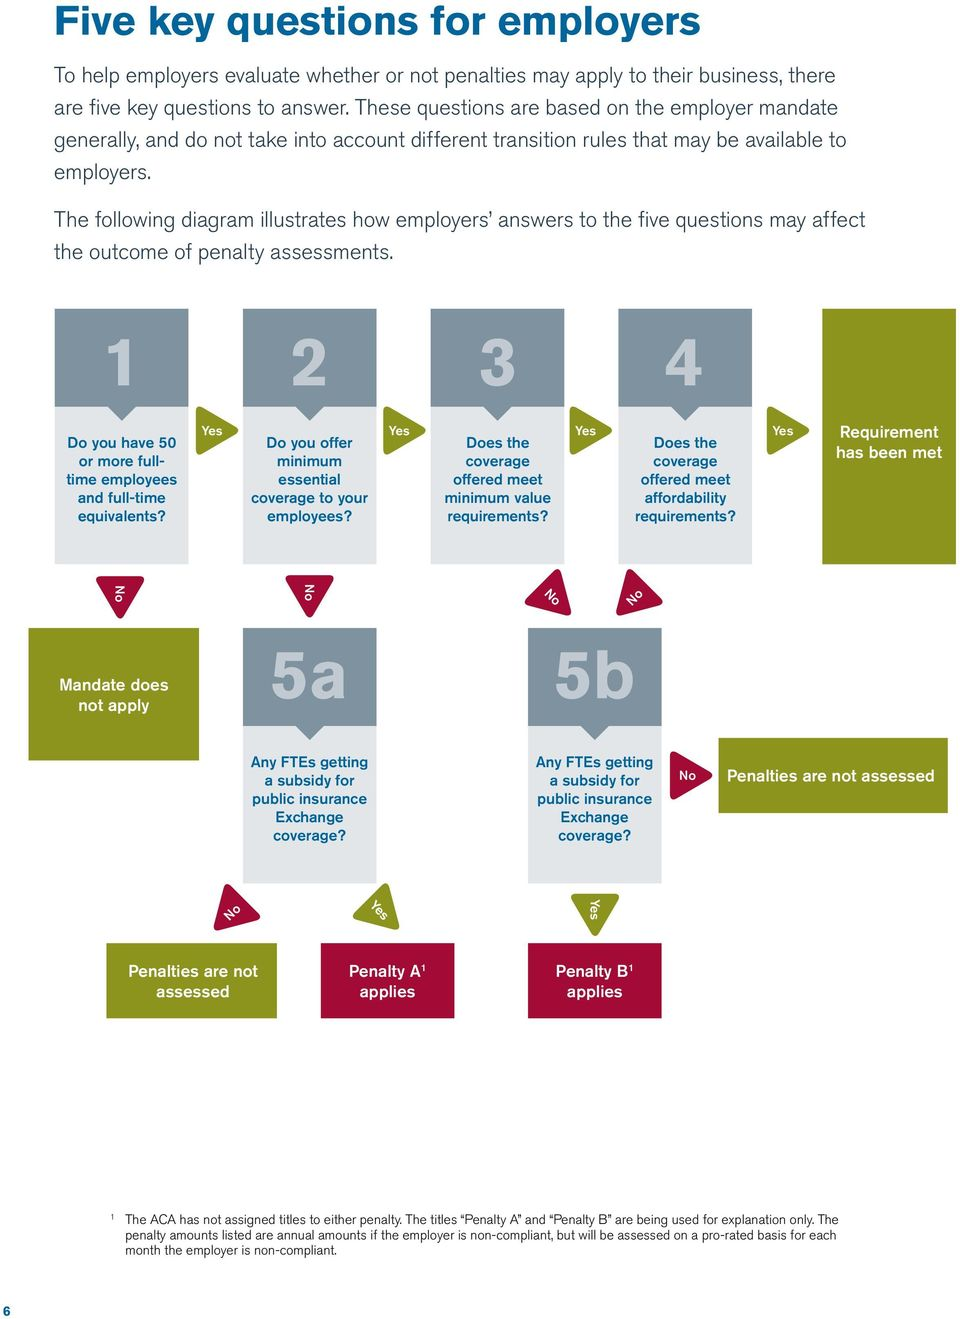 The following diagram illustrates how employers answers to the five questions may affect the outcome of penalty assessments.